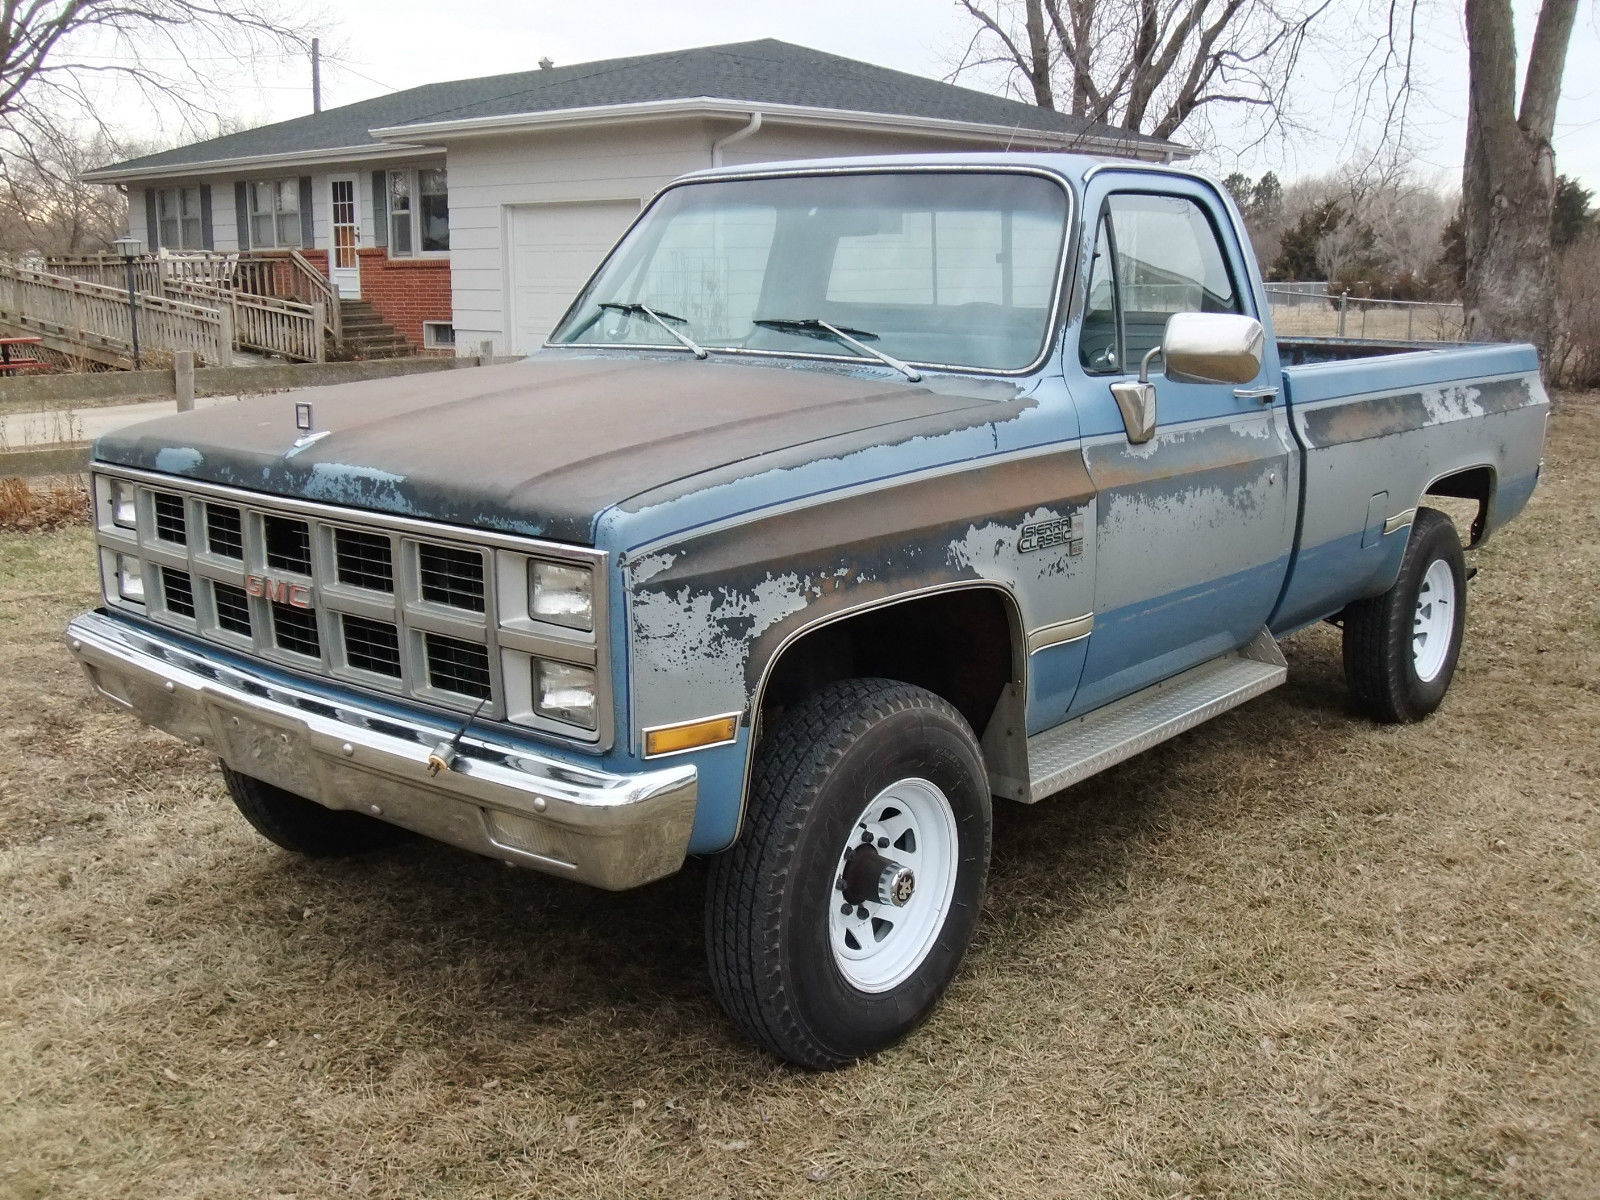 1982 Gmc Fuse Panel Diagram Wiring Library 1999 Chevy S10 Pick Up Engine Sierra 2500 82 Classic Silverado